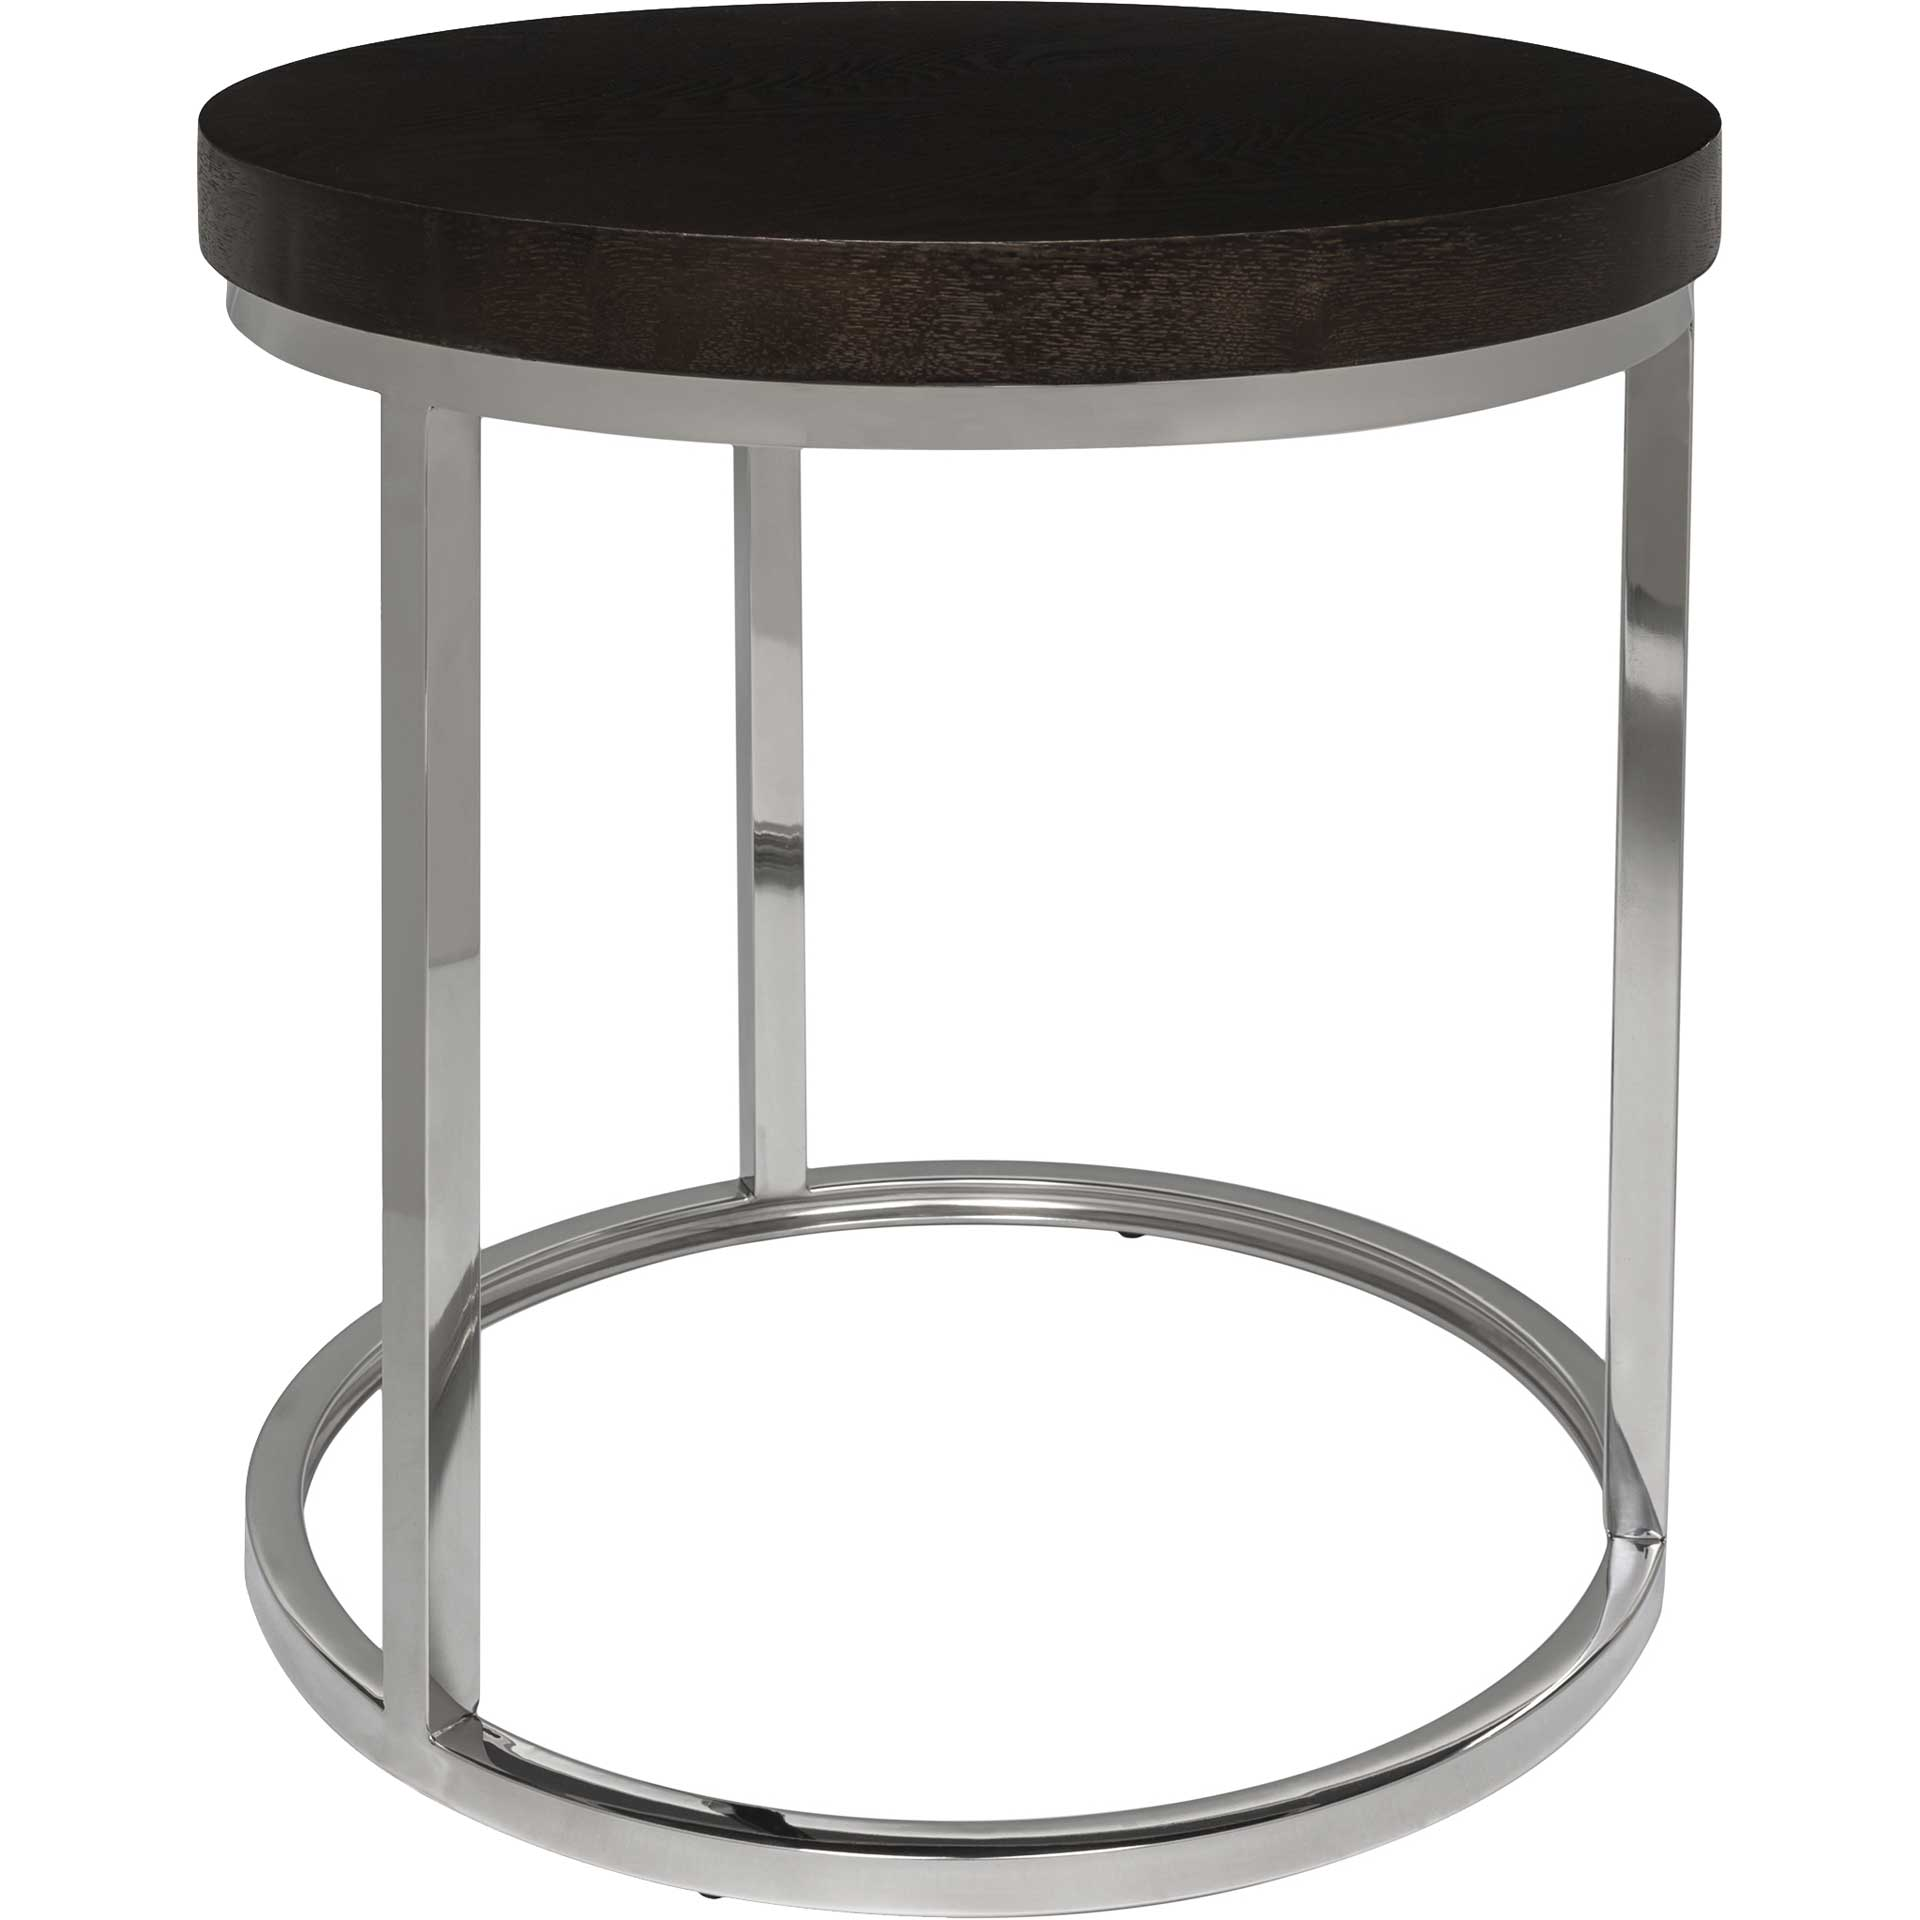 Tullis Black Glass Top Round End Table Black